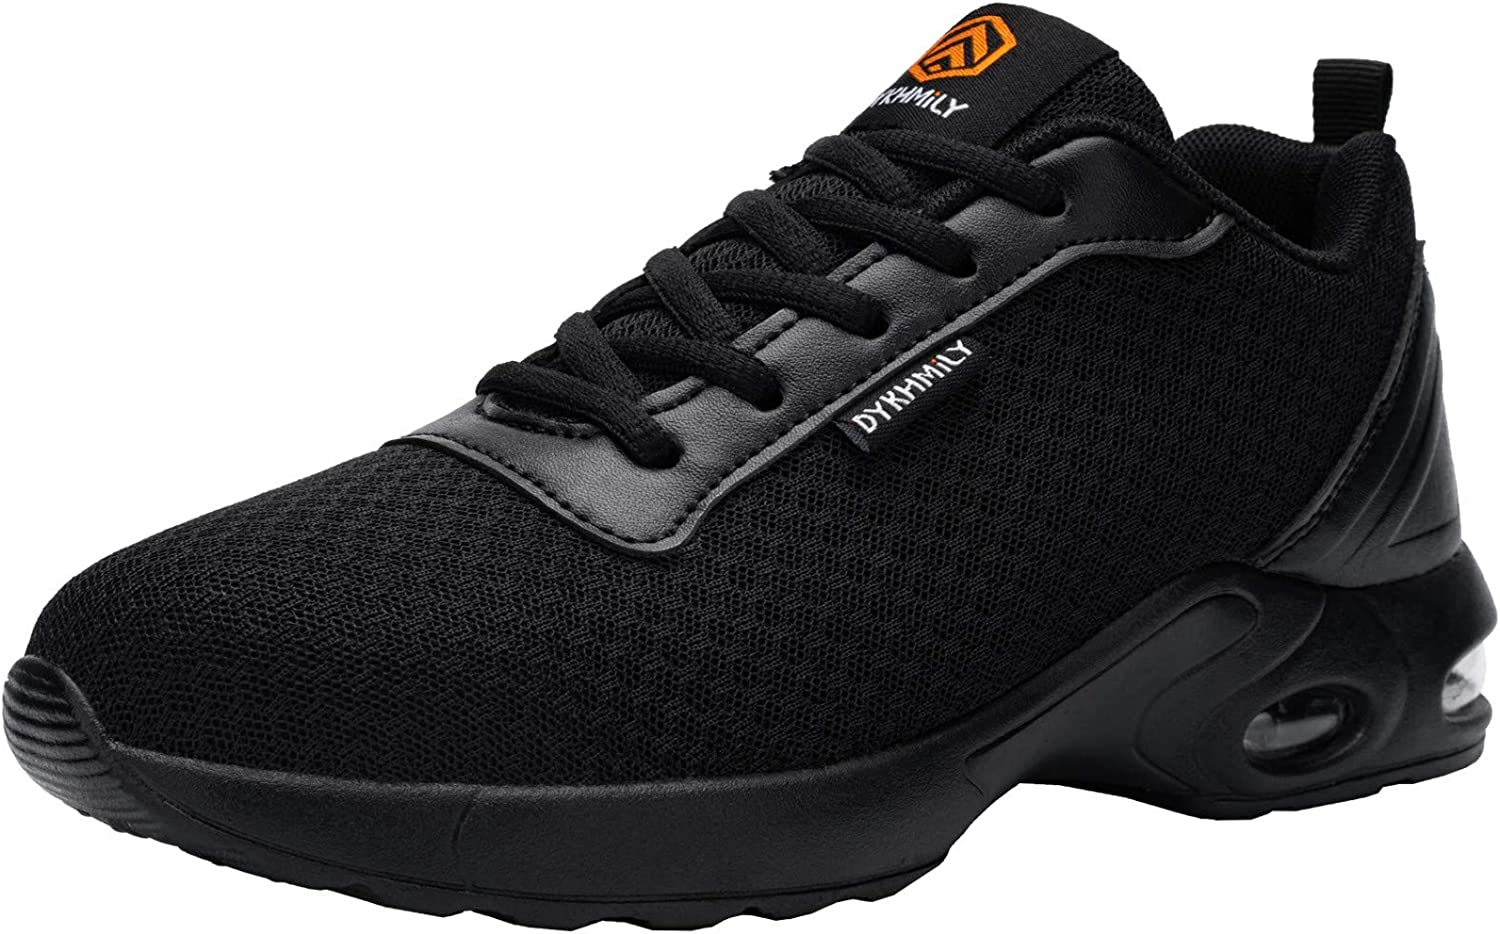 FENLERN Steel Toe Max 66% Max 53% OFF OFF Shoes for Women Lightweight Work Safety Sneake